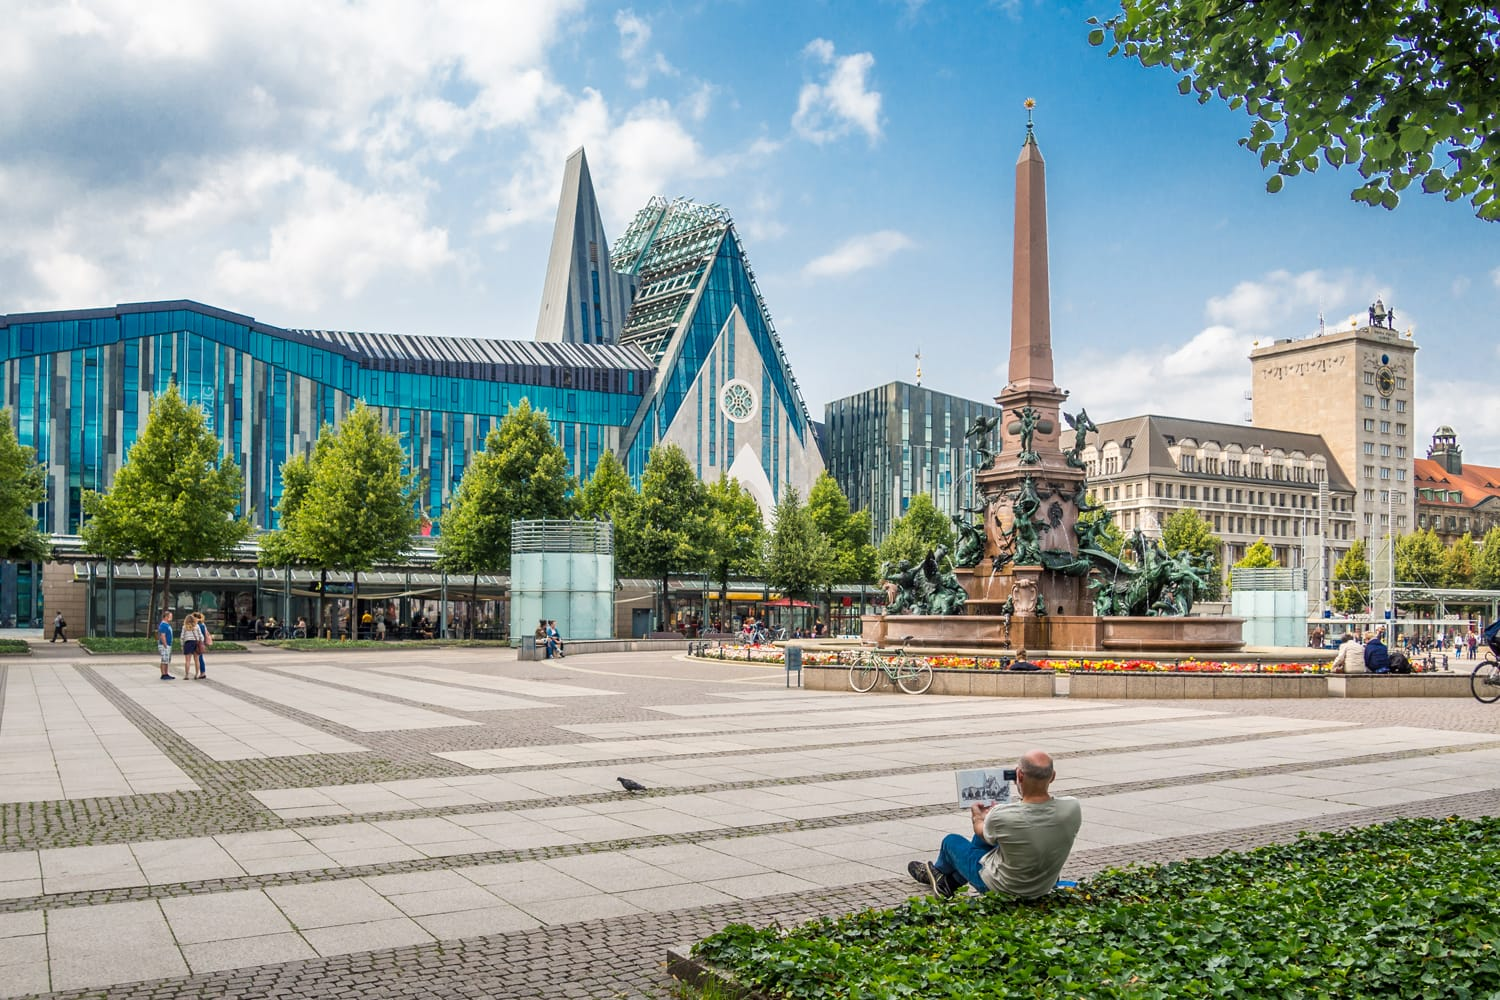 Augustusplatz in Leipzig, Germany